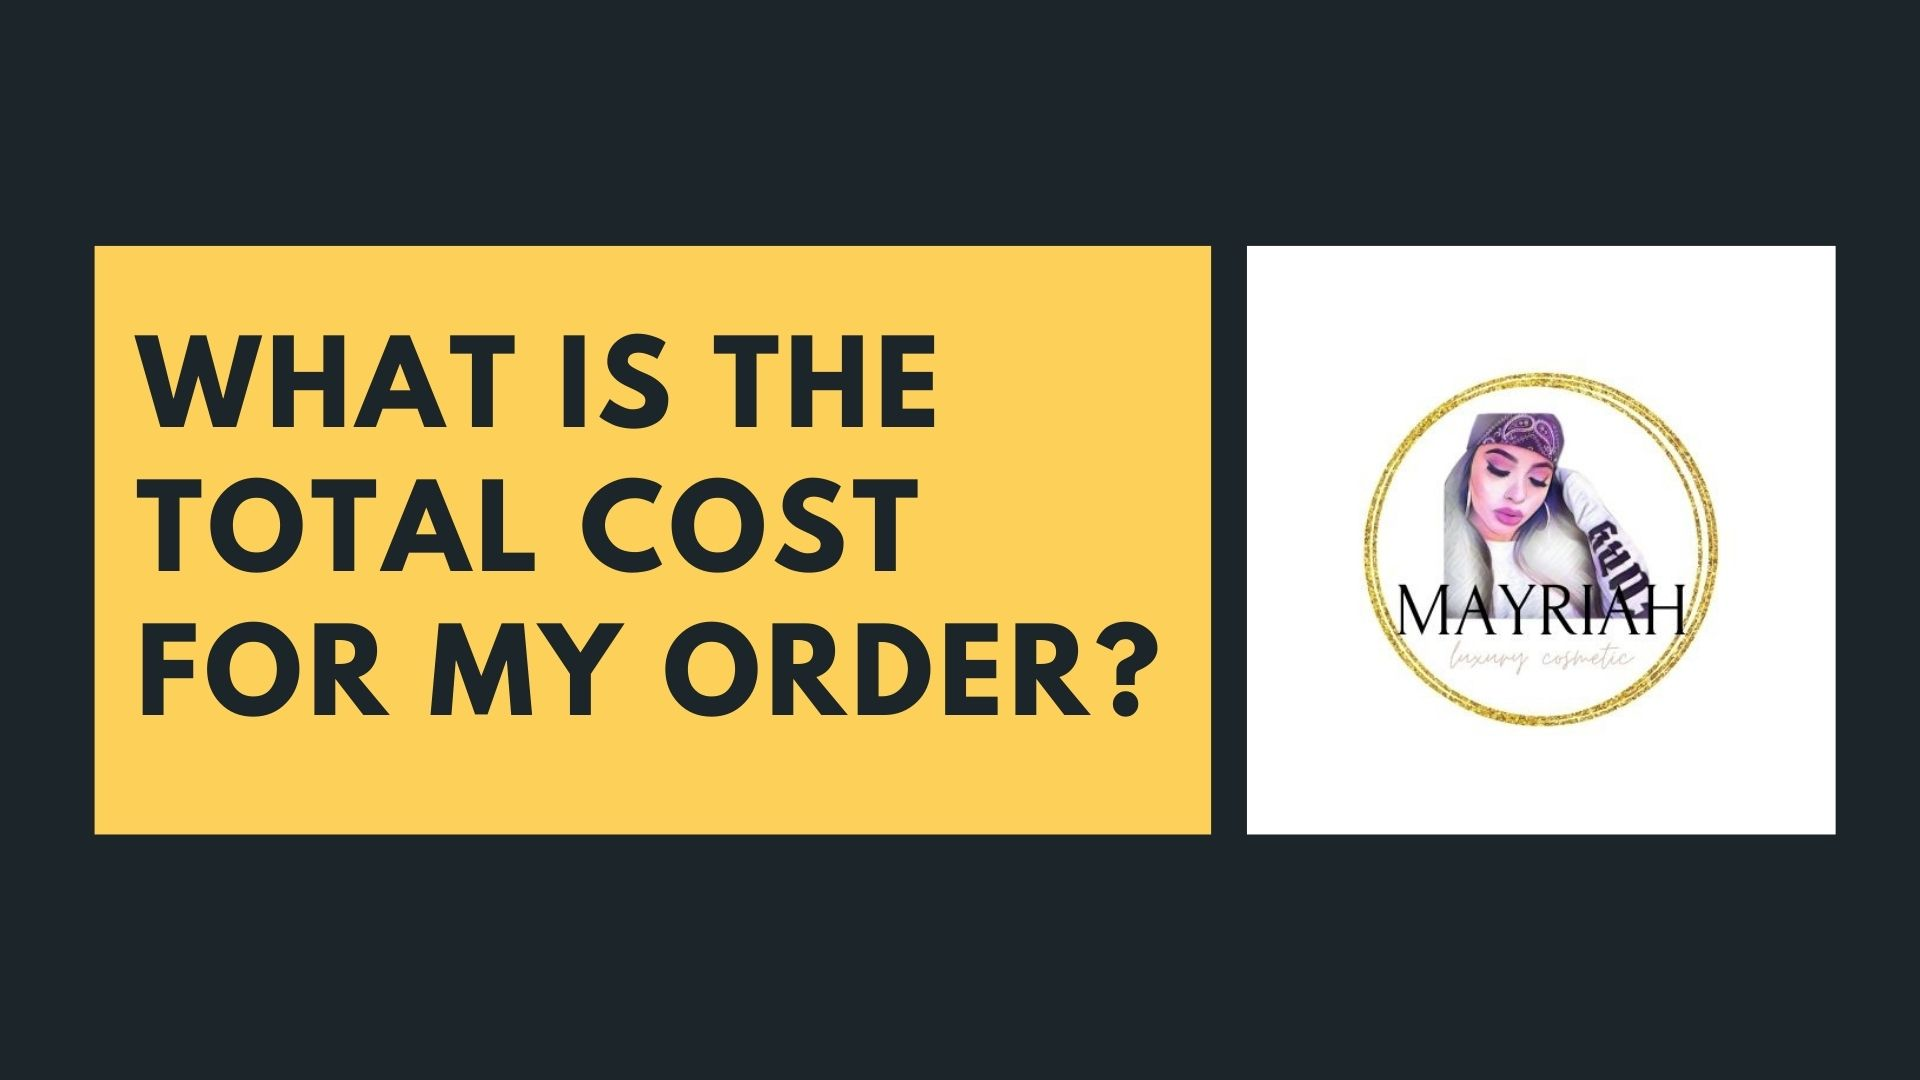 What is the total cost for my order